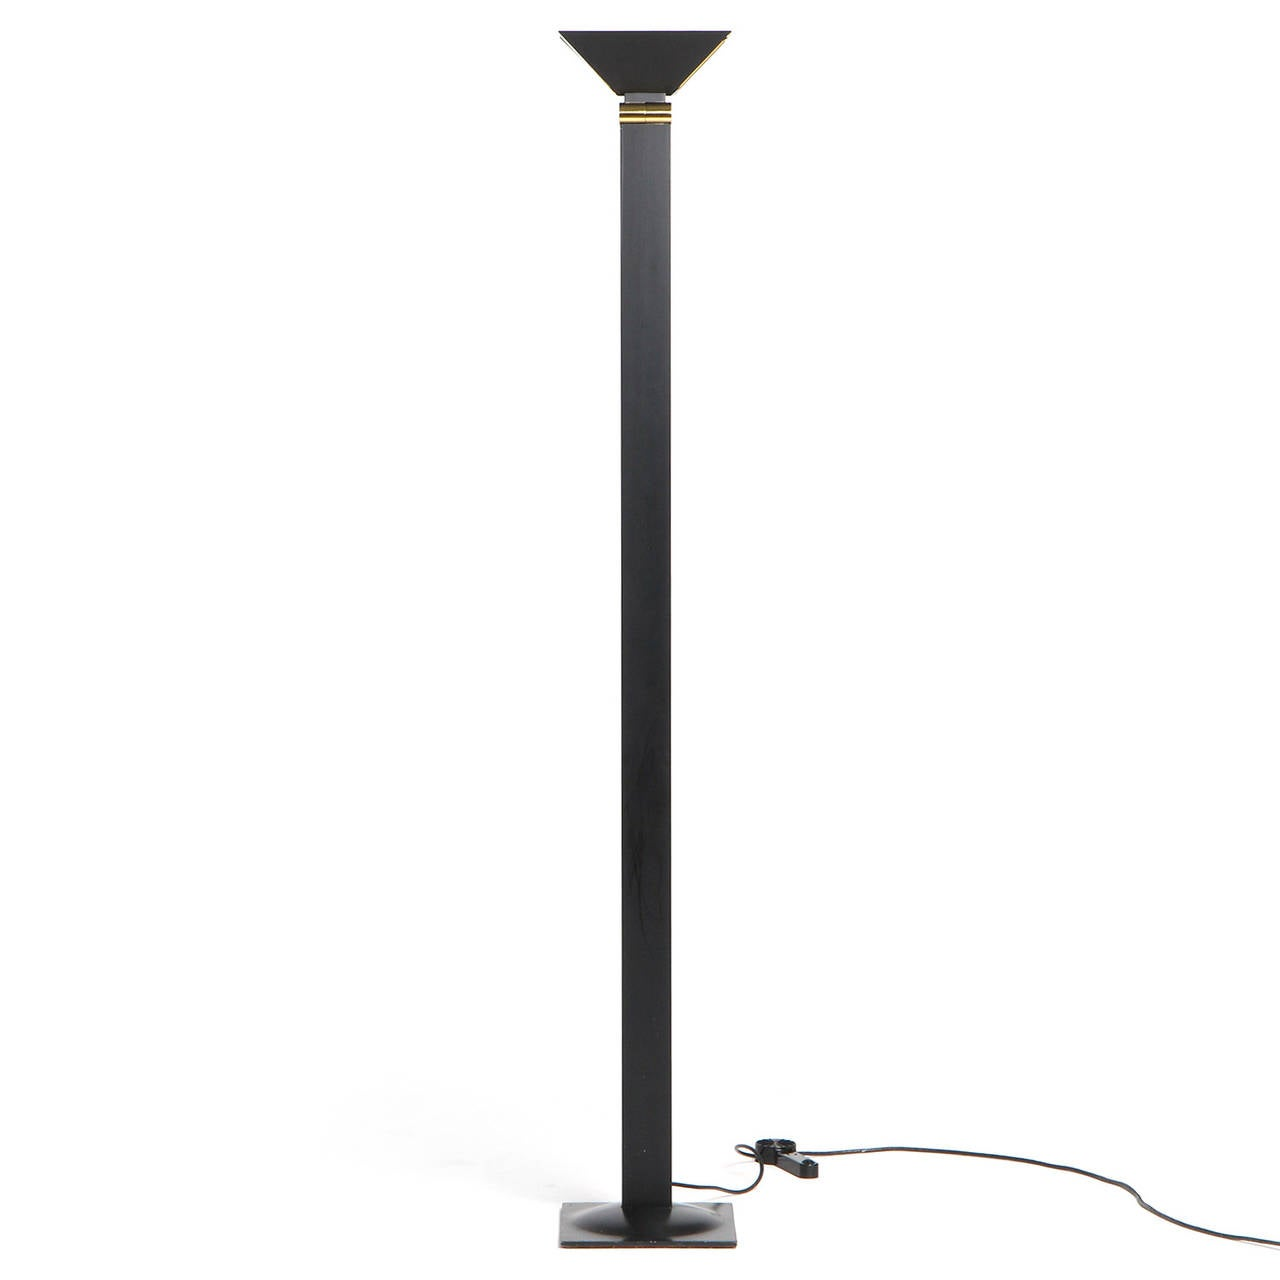 Architectural Floor Lamp by F. Fabian 1 - Architectural Floor Lamp By F. Fabian For Sale At 1stdibs